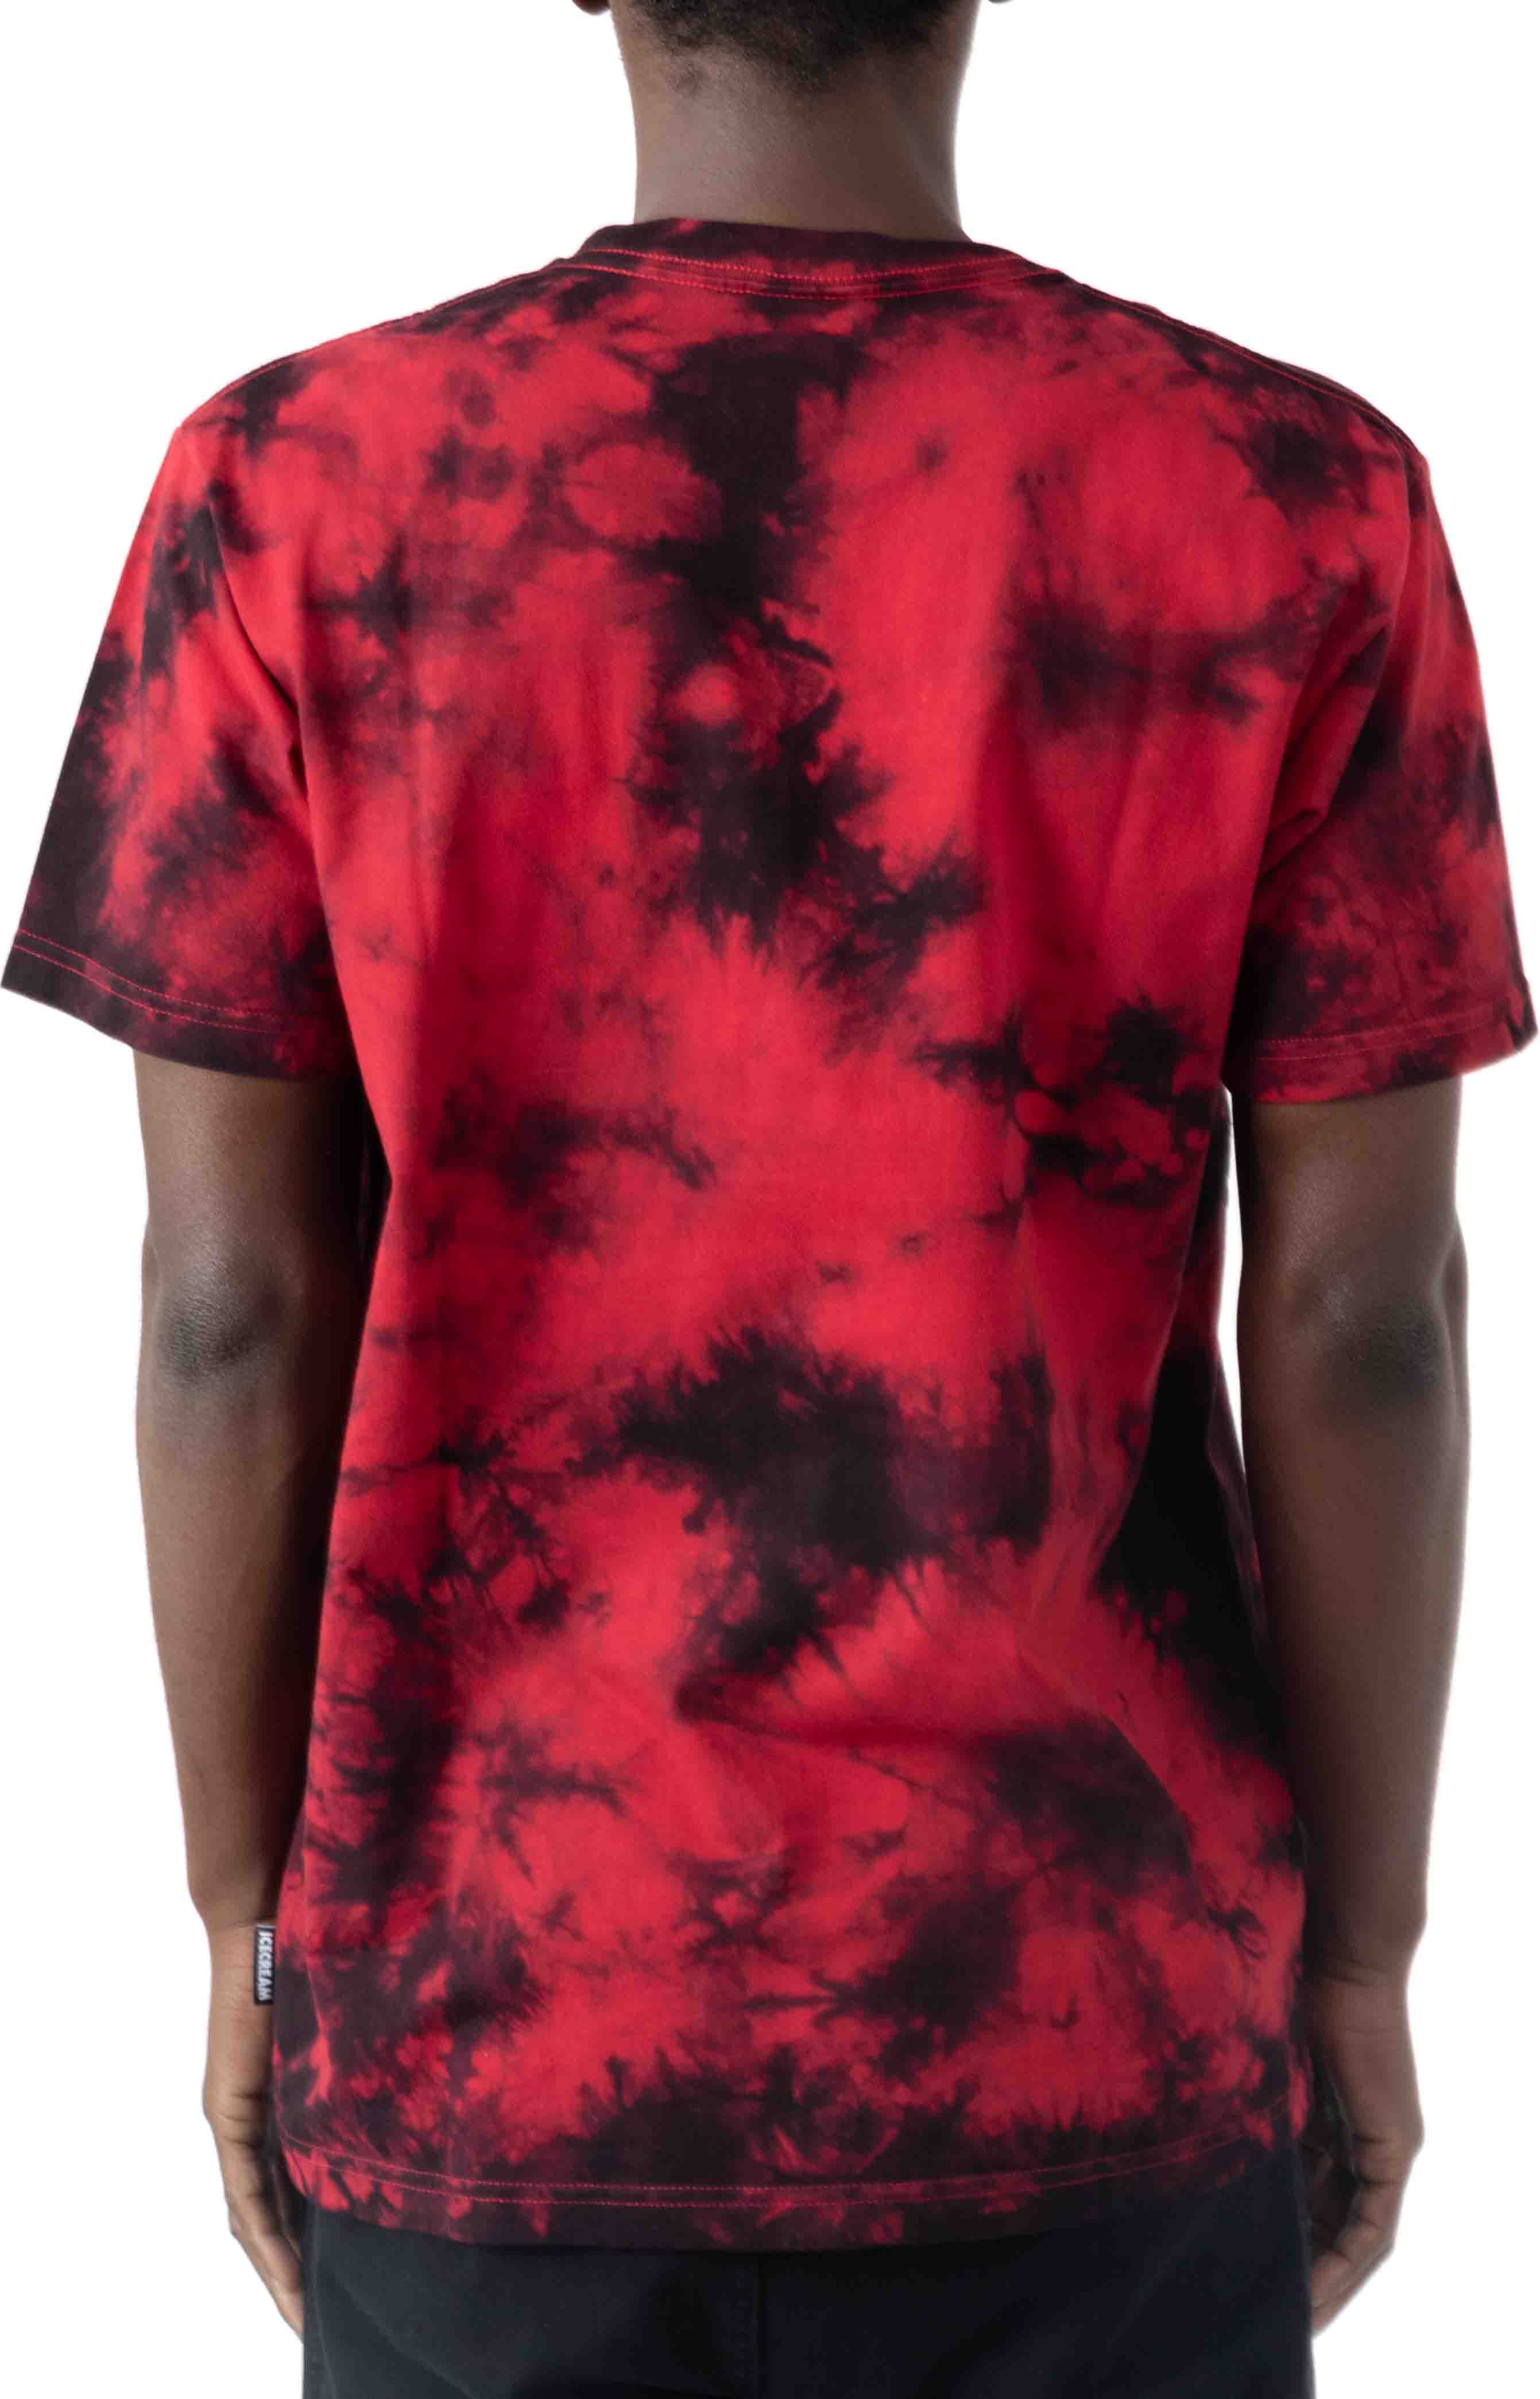 Spoon Fed SS Knit T-Shirt - Tango Red  3